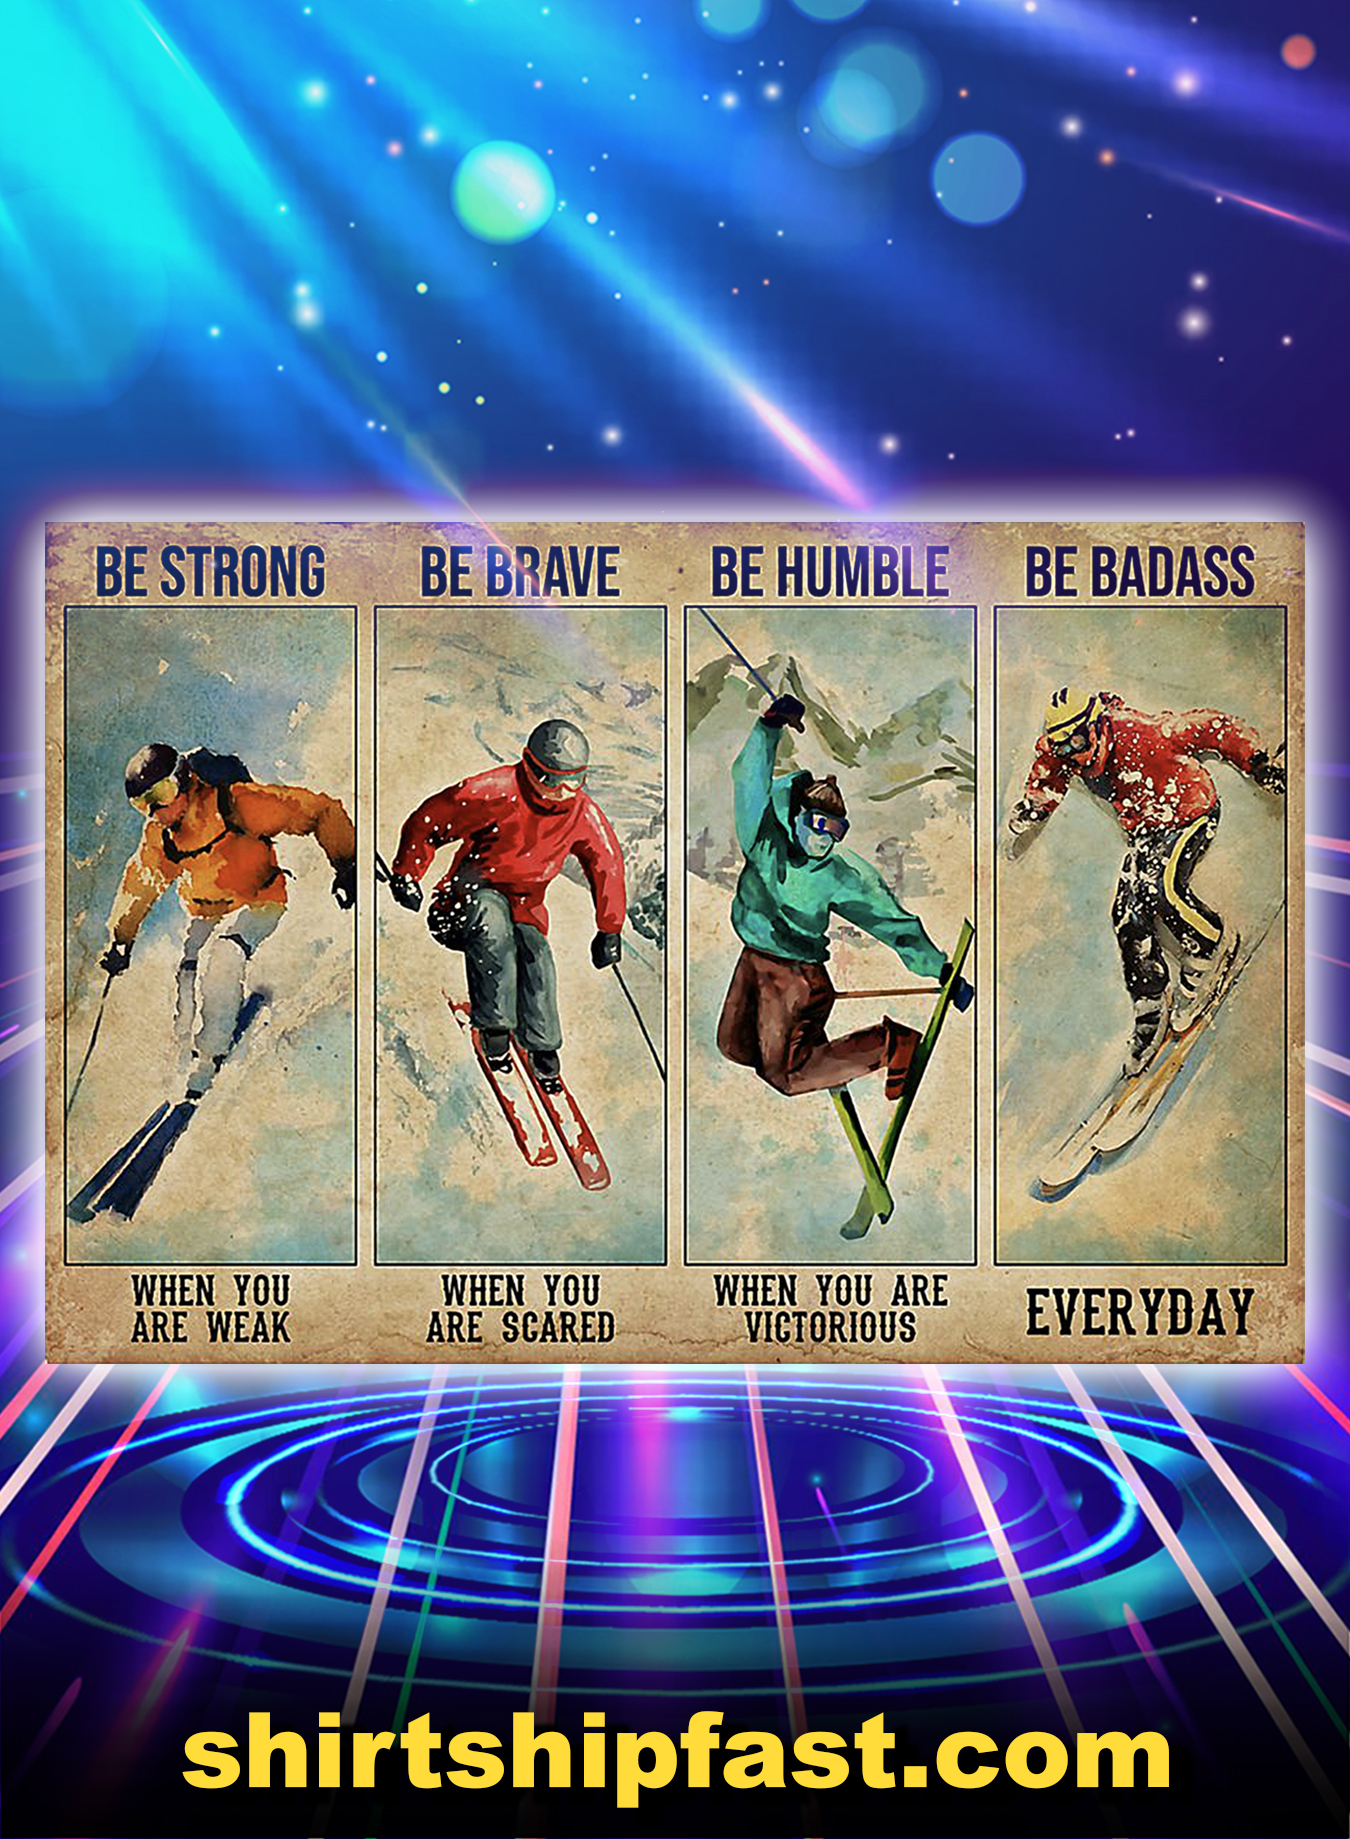 Skiing be strong be brave be humble be badass poster - A2